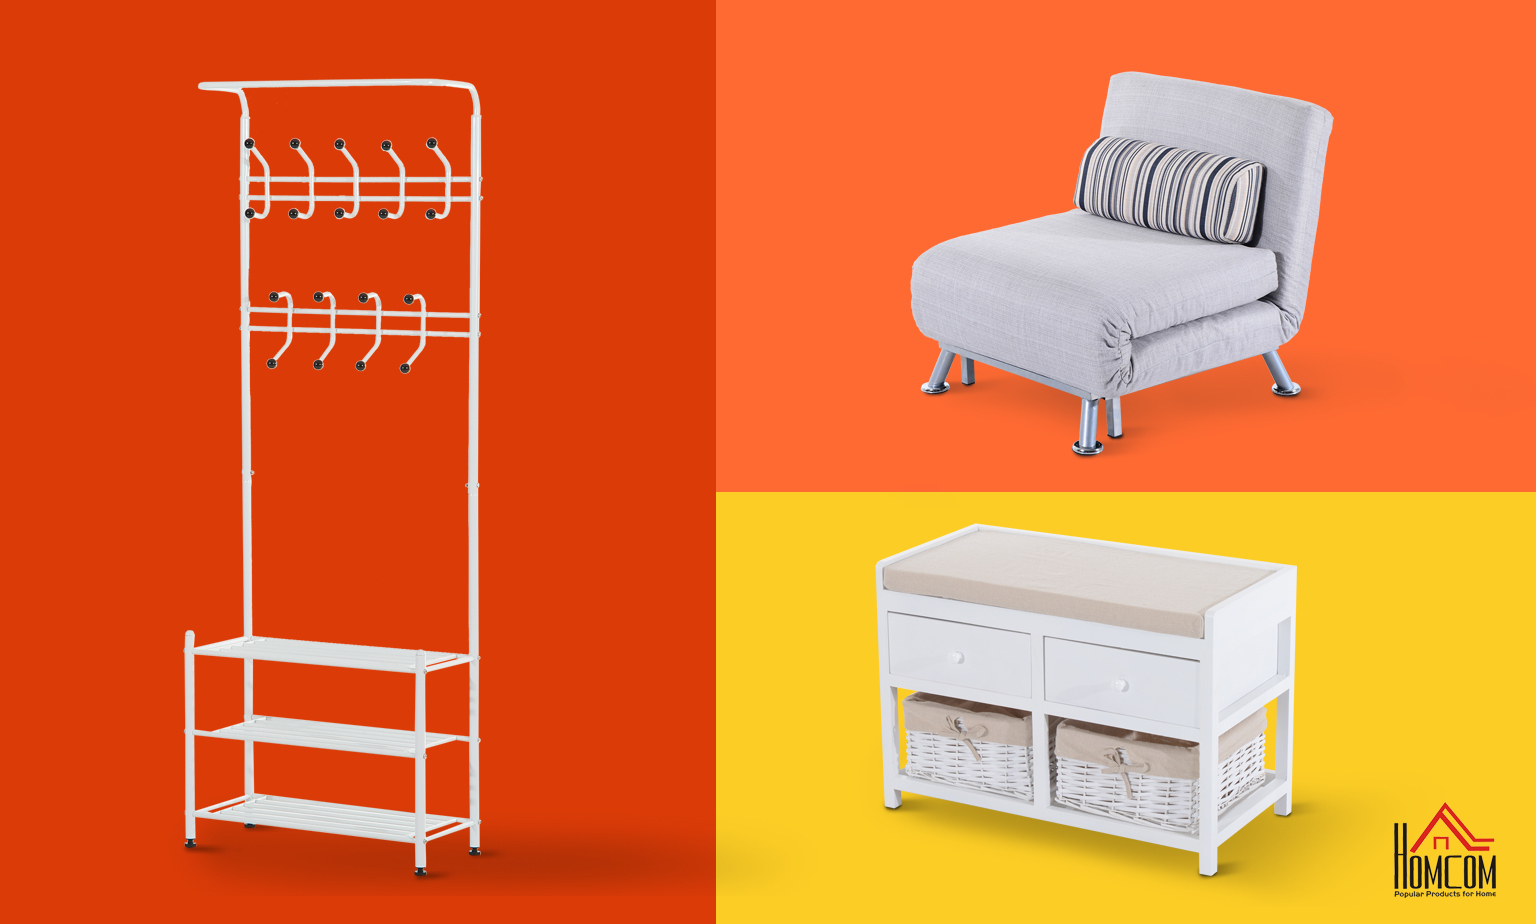 Save up to 60% on Furniture from Homcom